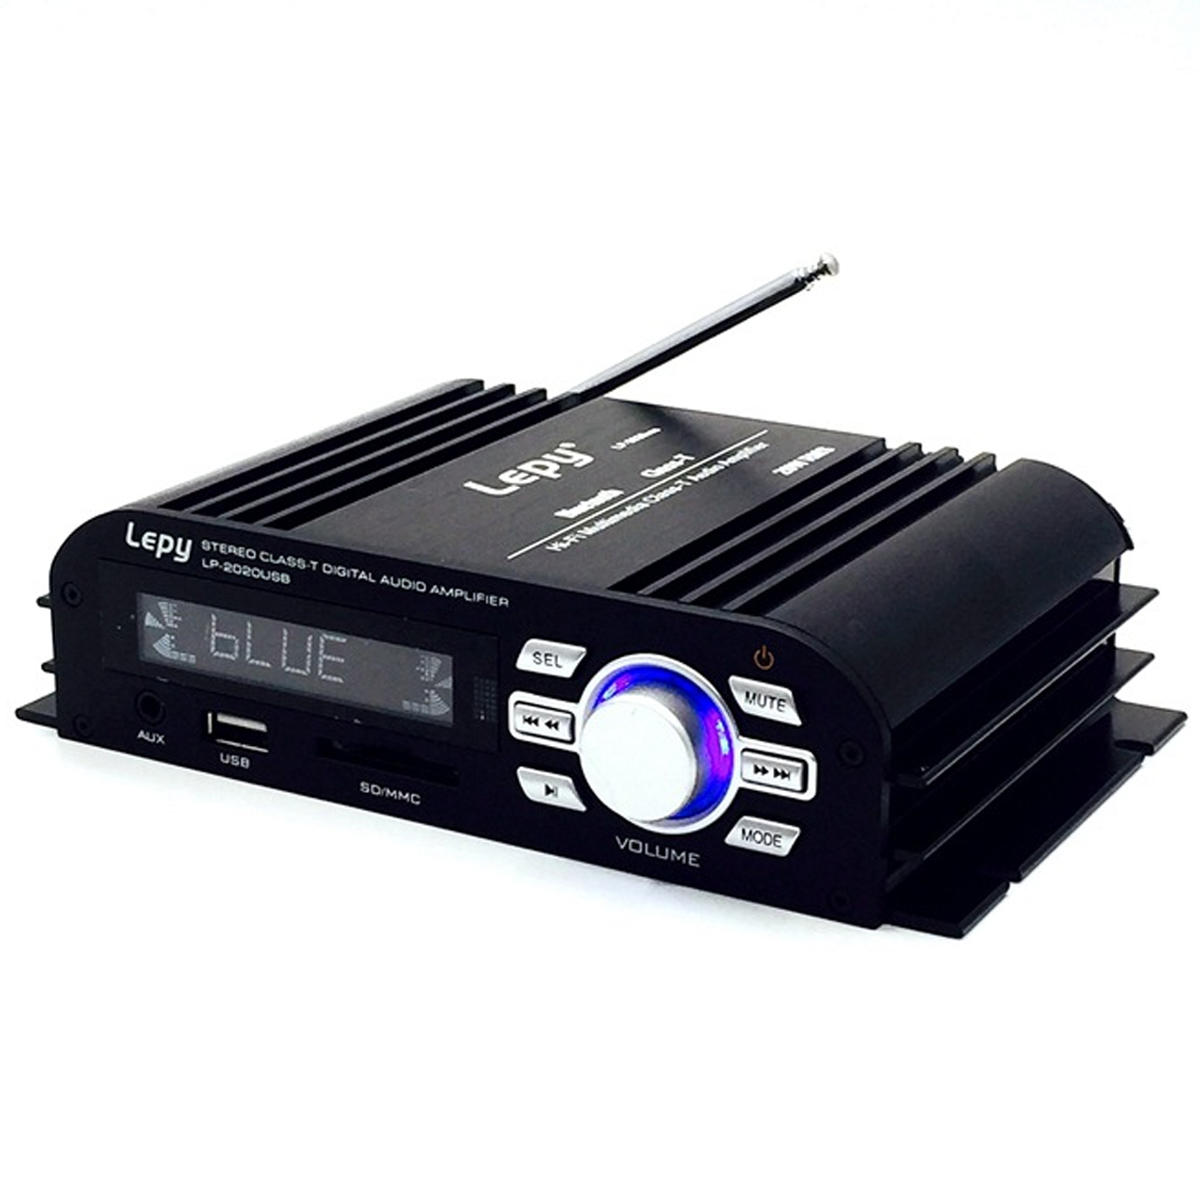 Hifi Bluetooth Lepy Lp 2020 Stereo Mini Class T Amplifier Bluetooth Digital Audio Hifi Power Amp